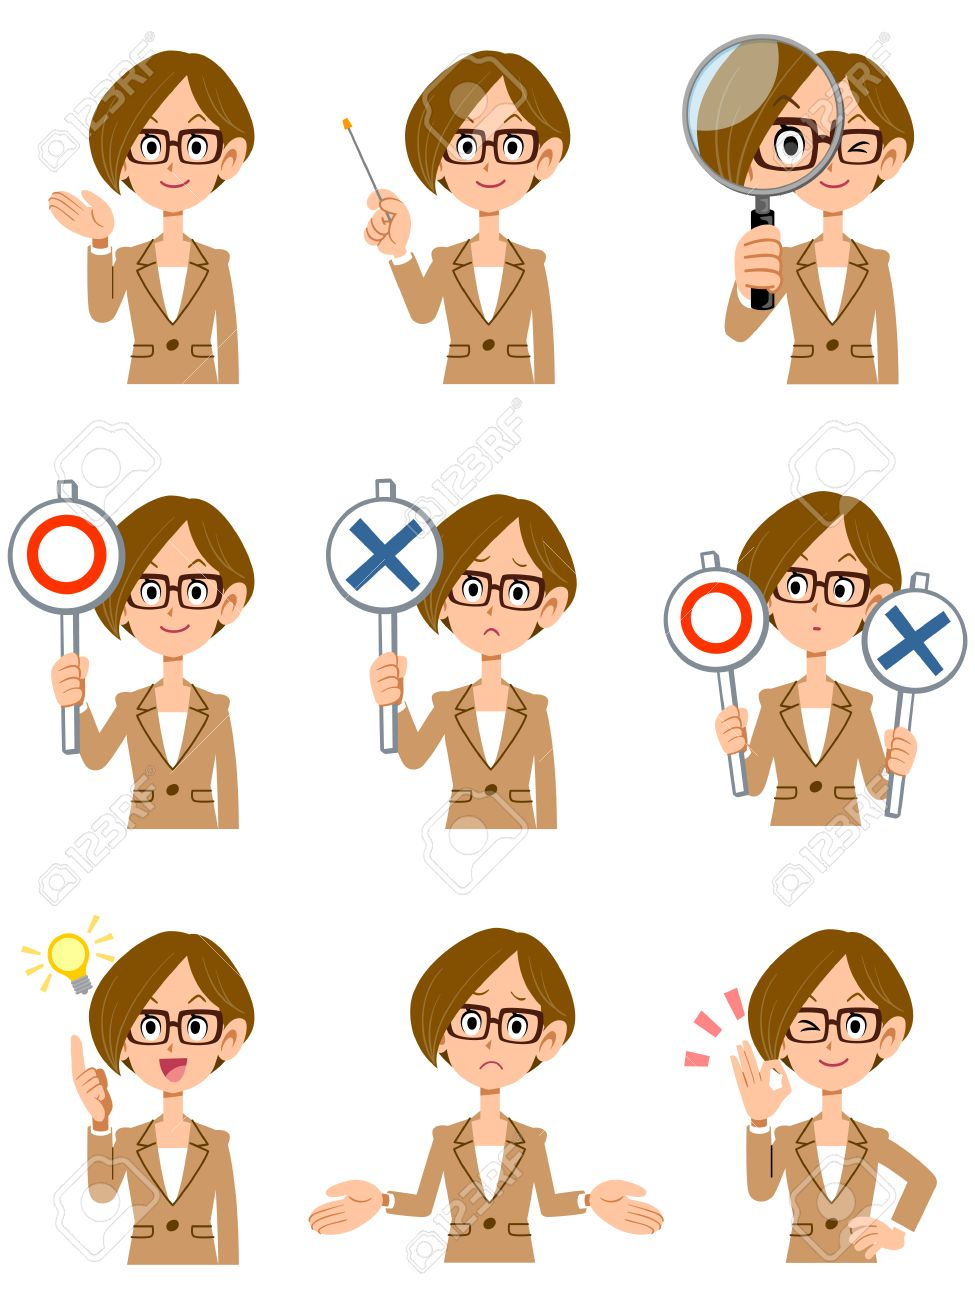 Facial expression and gesture that glasses shortcuts working women 9 - 56582161